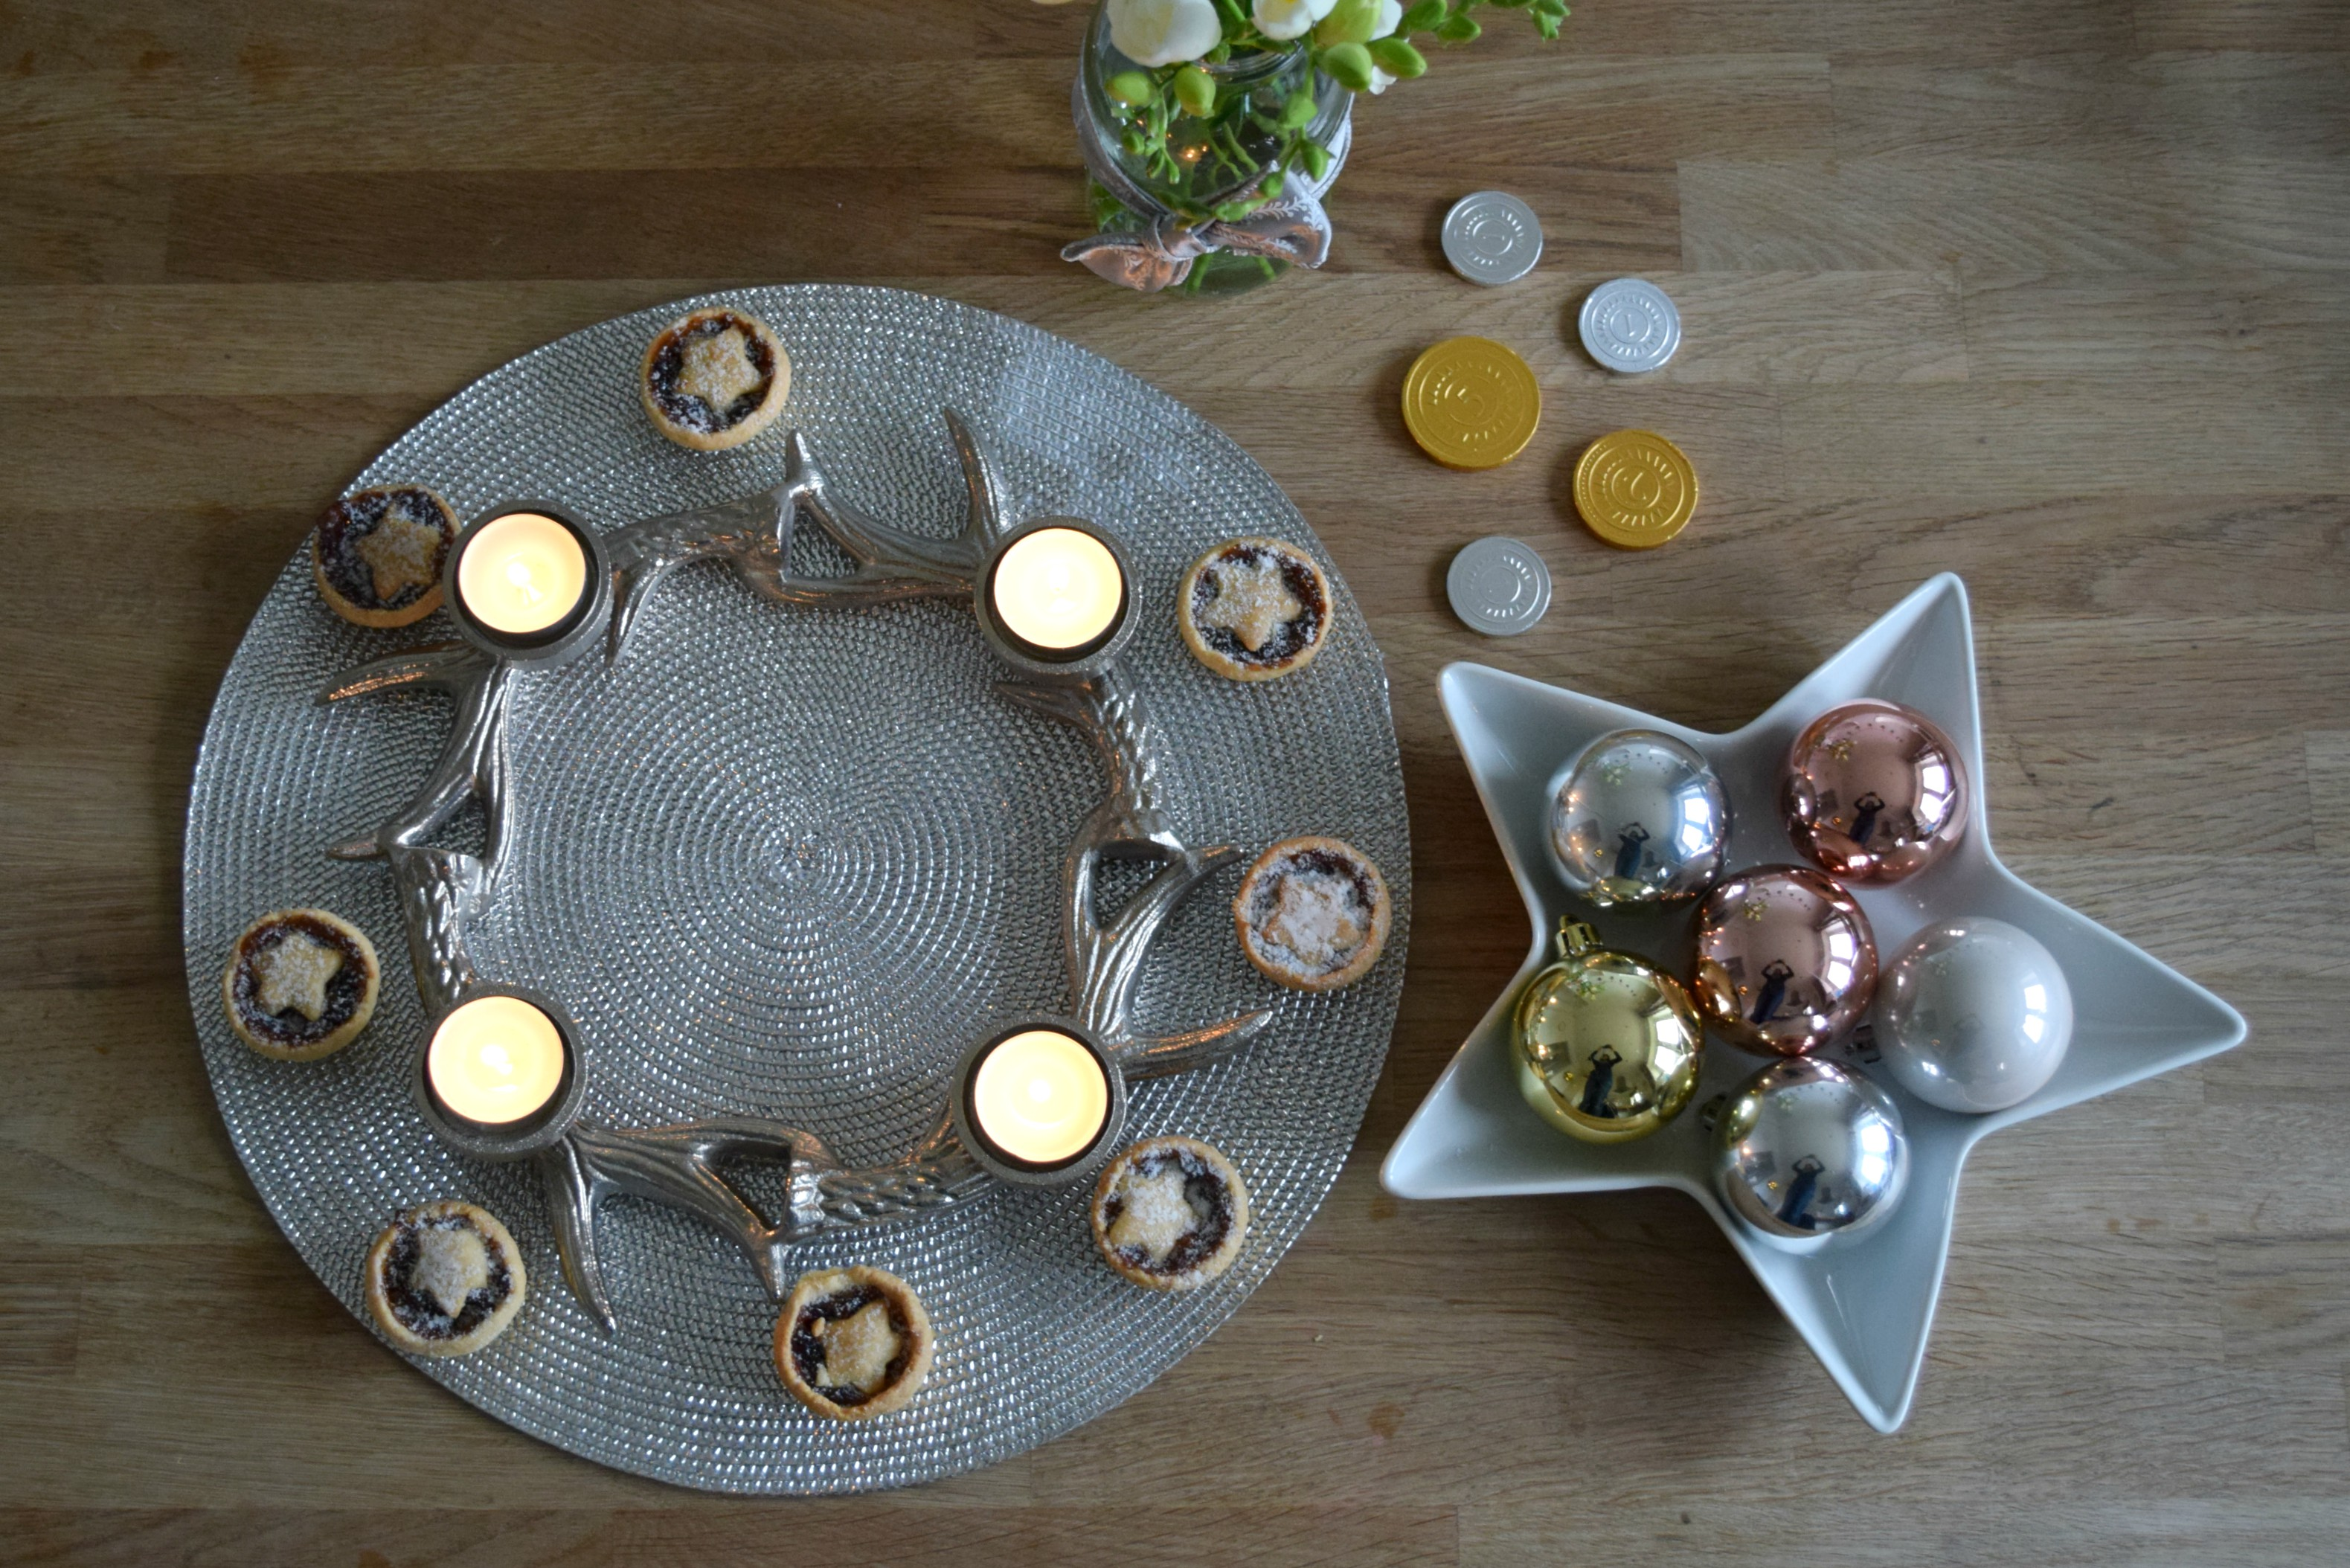 Antler candles, mince pies and baubles